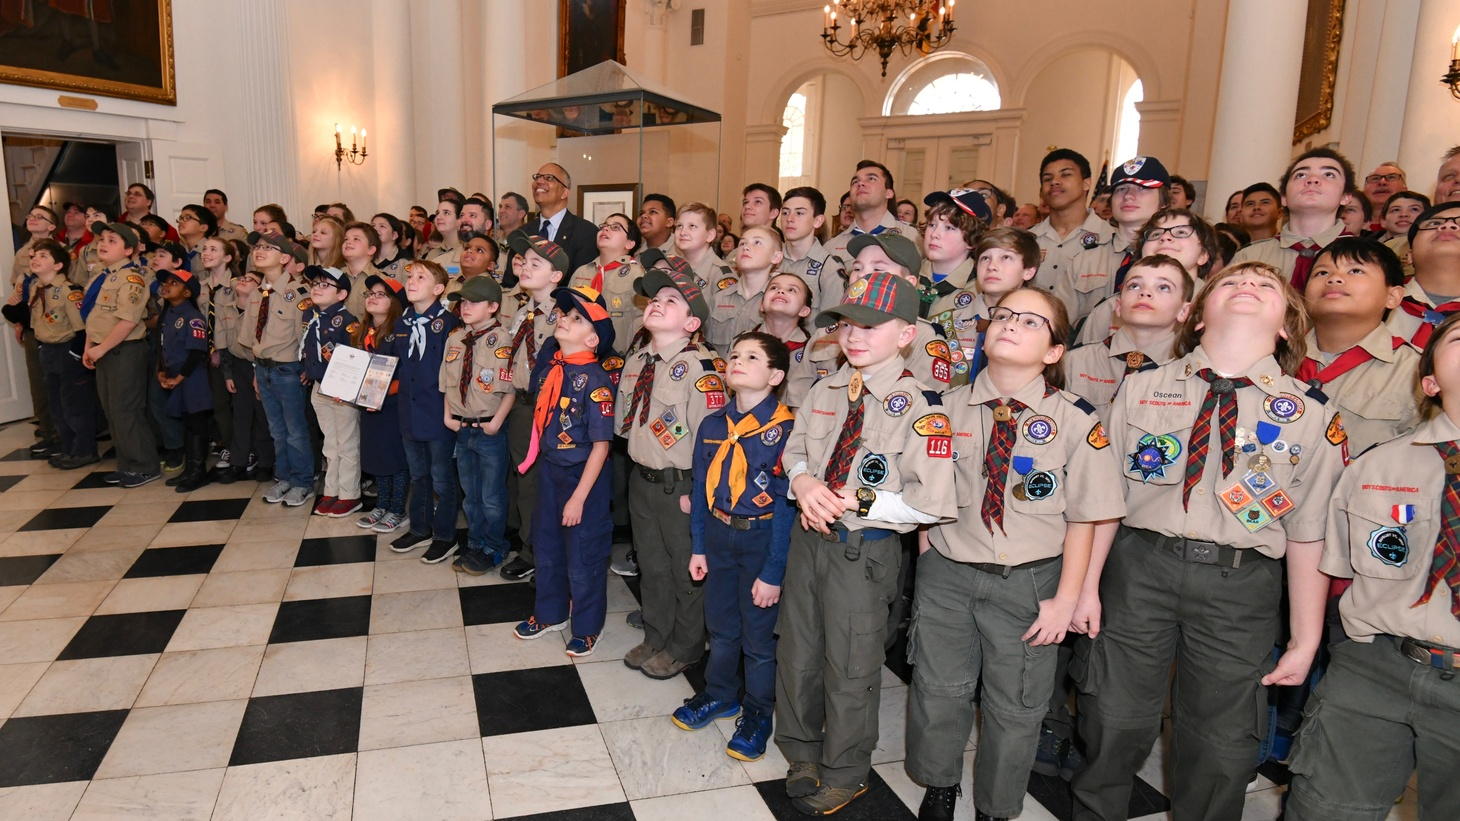 Boy Scouts of America in Annapolis, Maryland.